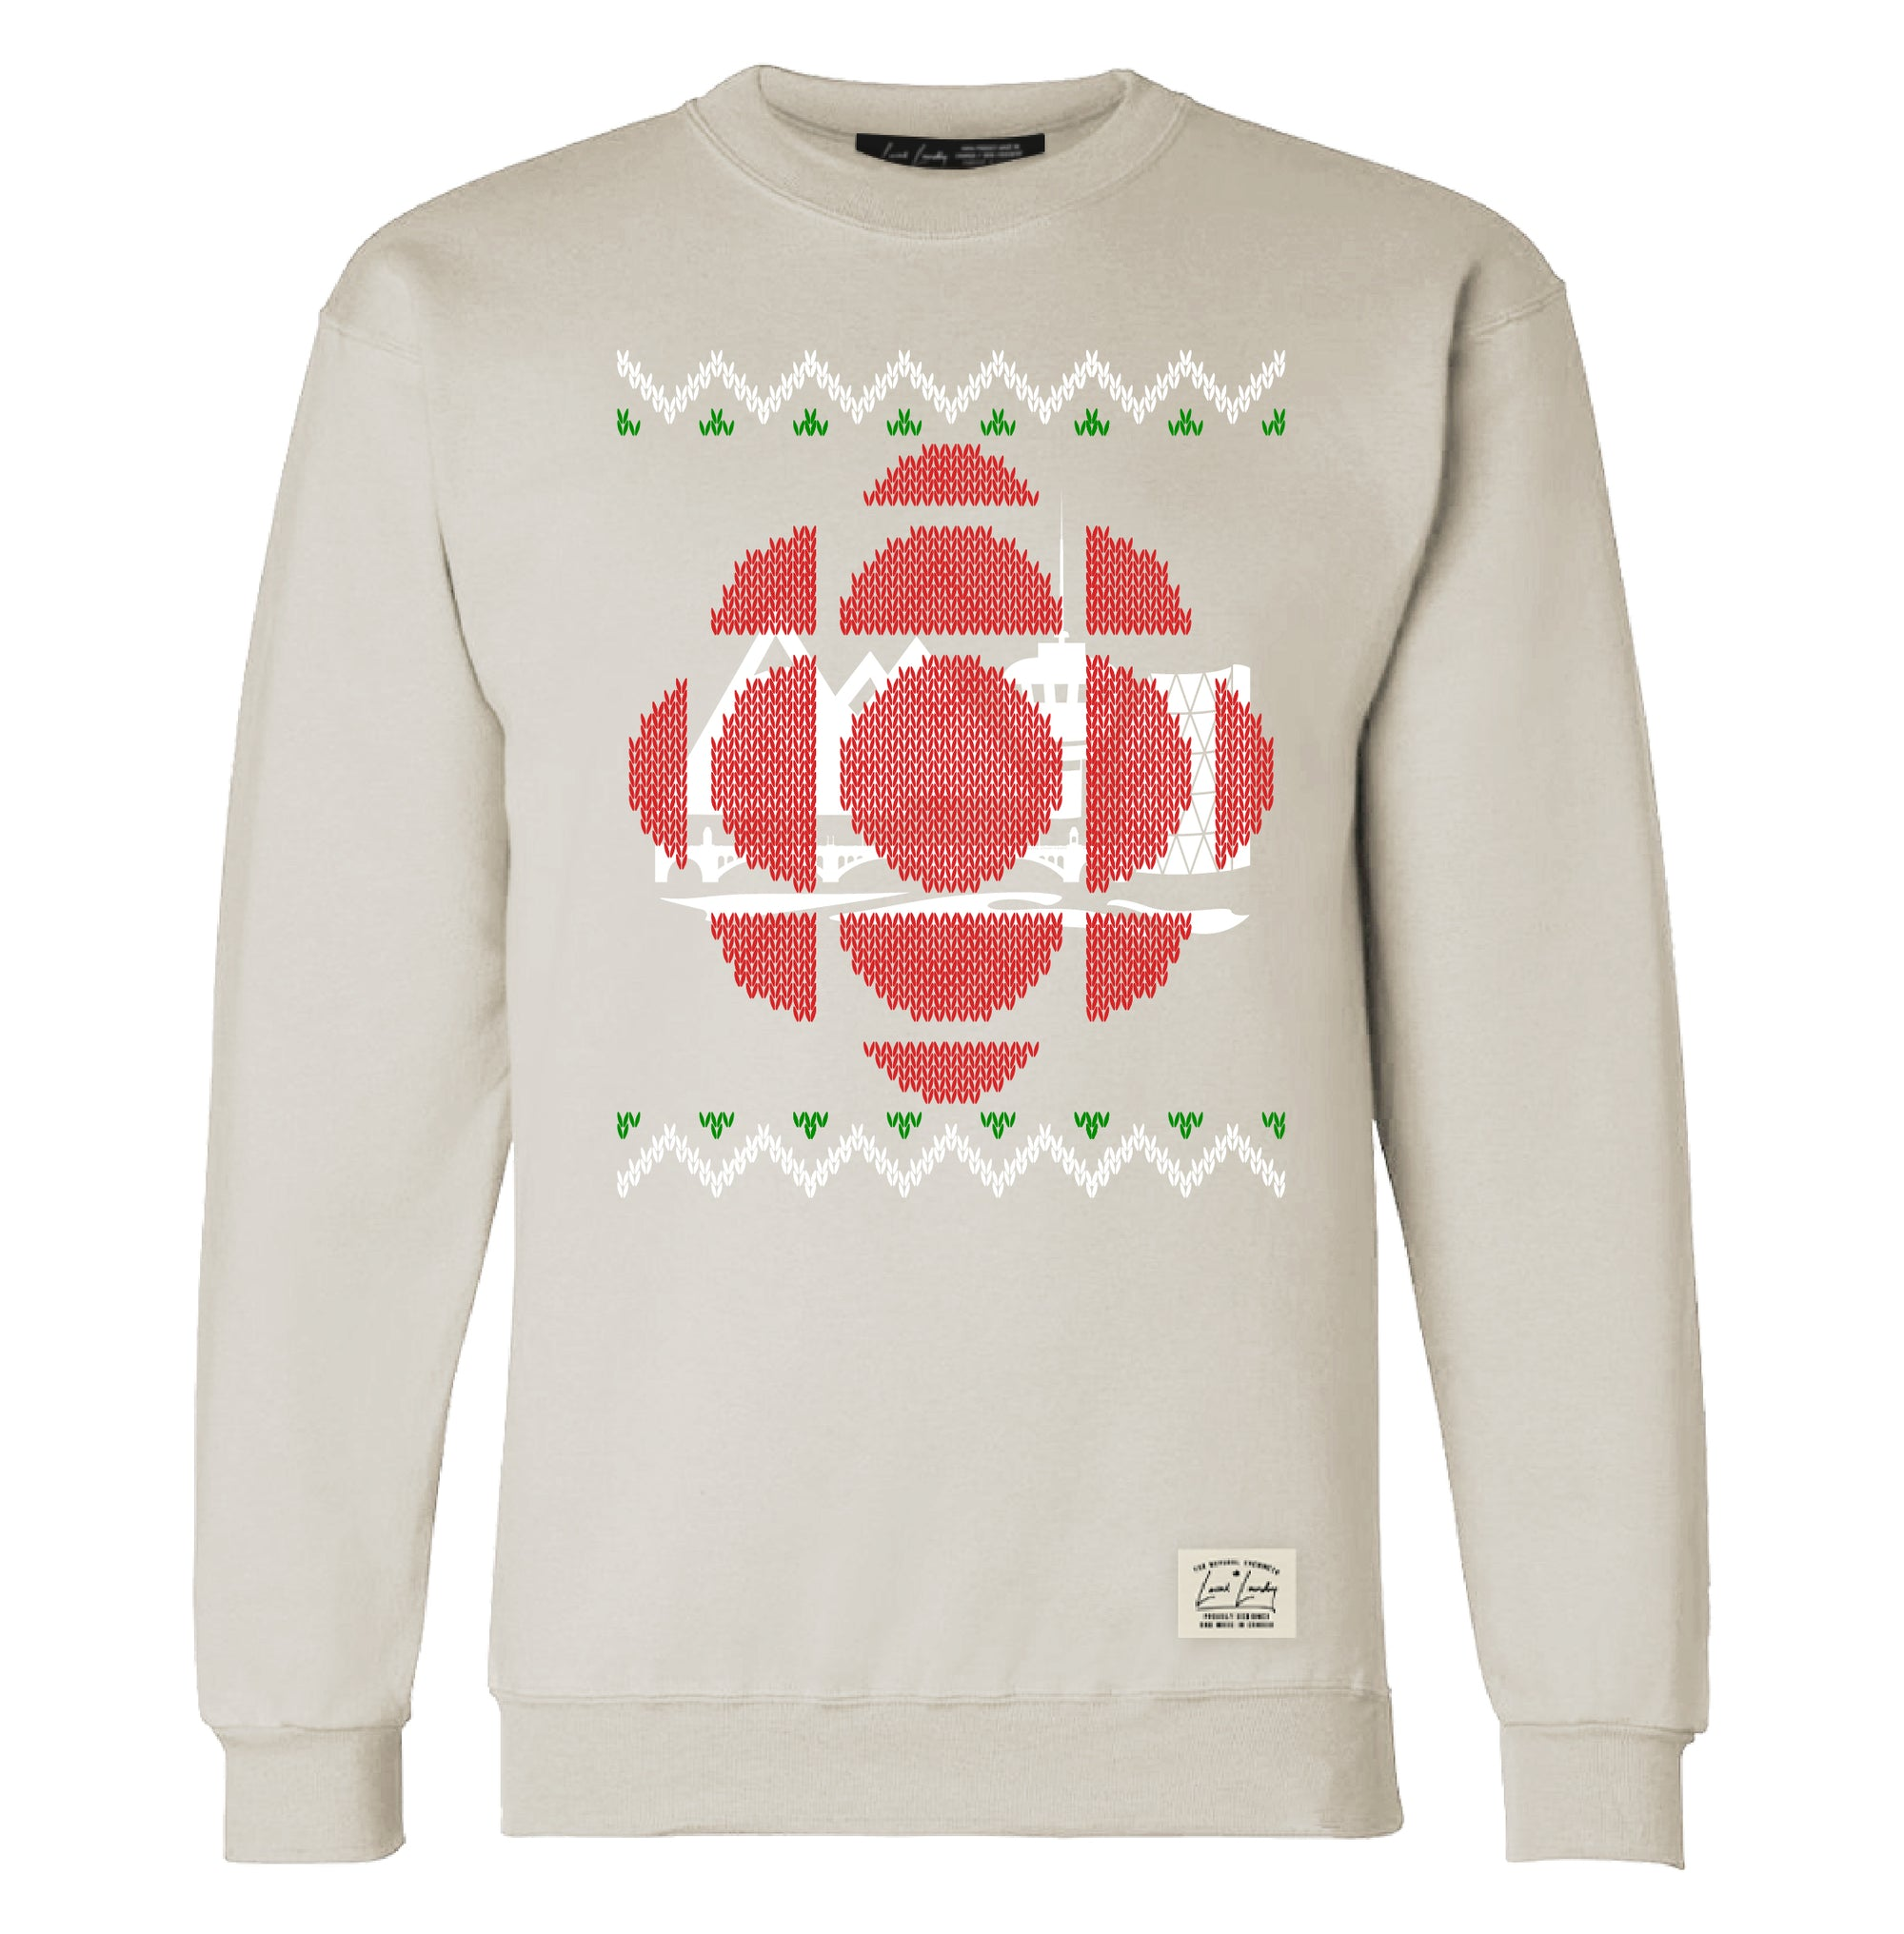 CBC Holiday Natural Bamboo Sweater 🇨🇦 - Local Laundry